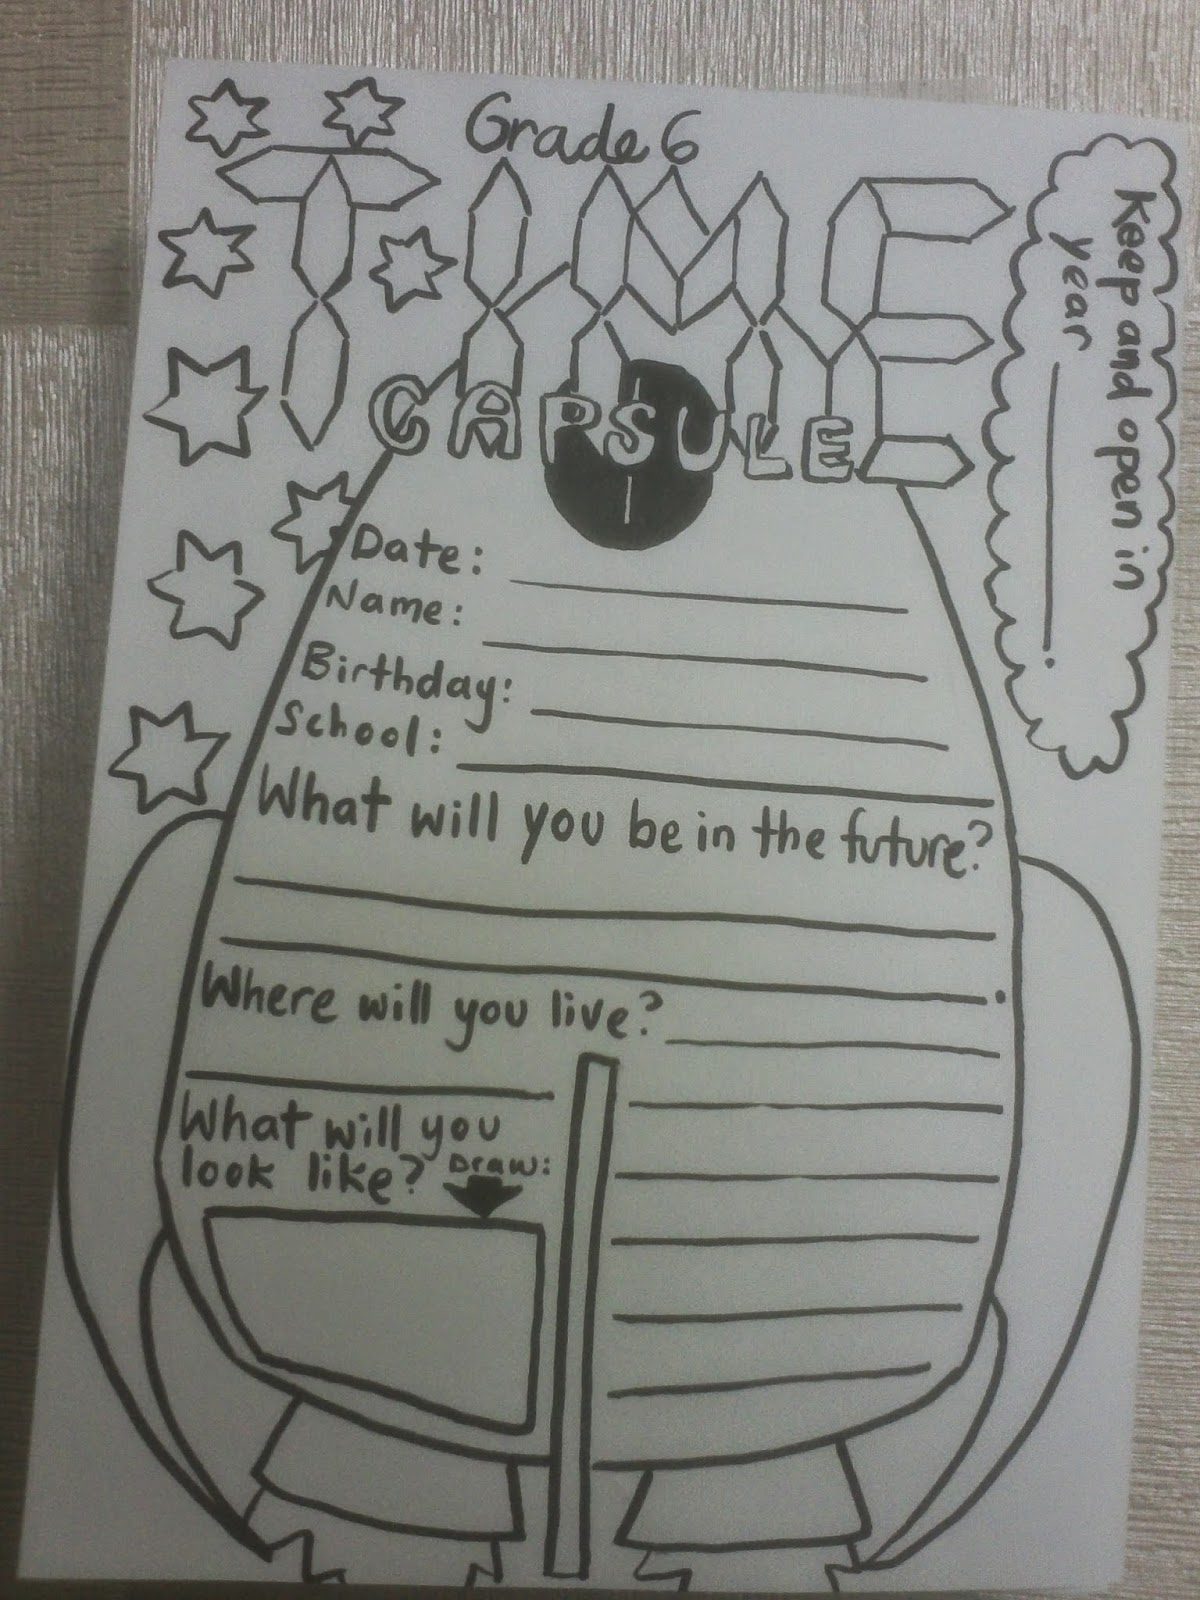 What Will You Do Time Capsule Project Mrs Baia S